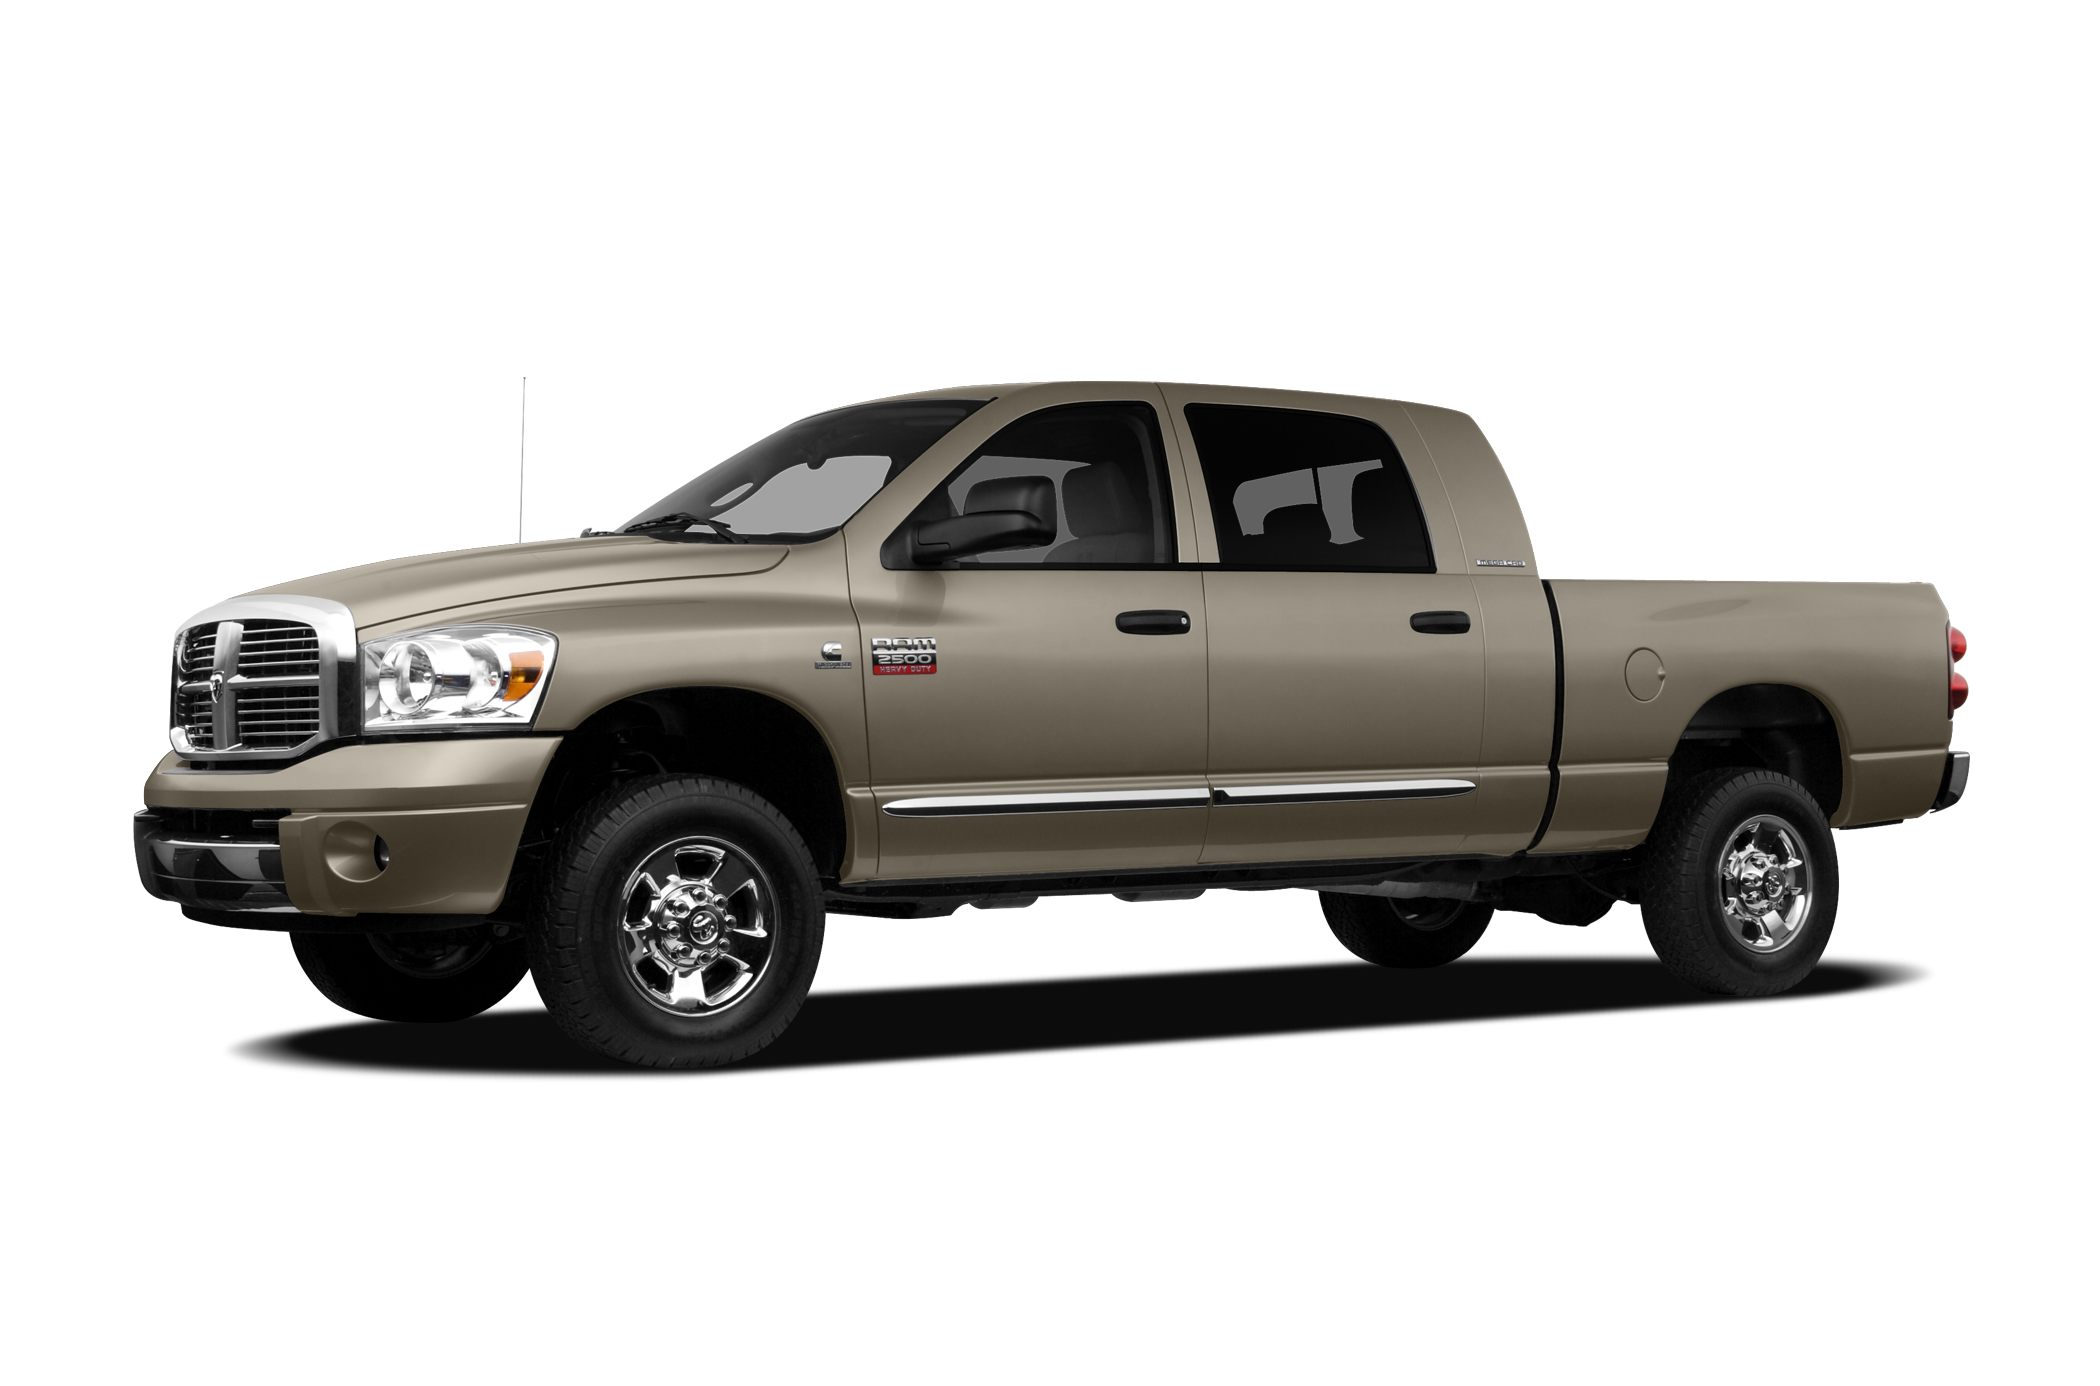 2008 Dodge Ram 2500  BUY WITH CONFIDENCE CARFAX Buyback Guarantee qualified LOADED WITH VALUE C